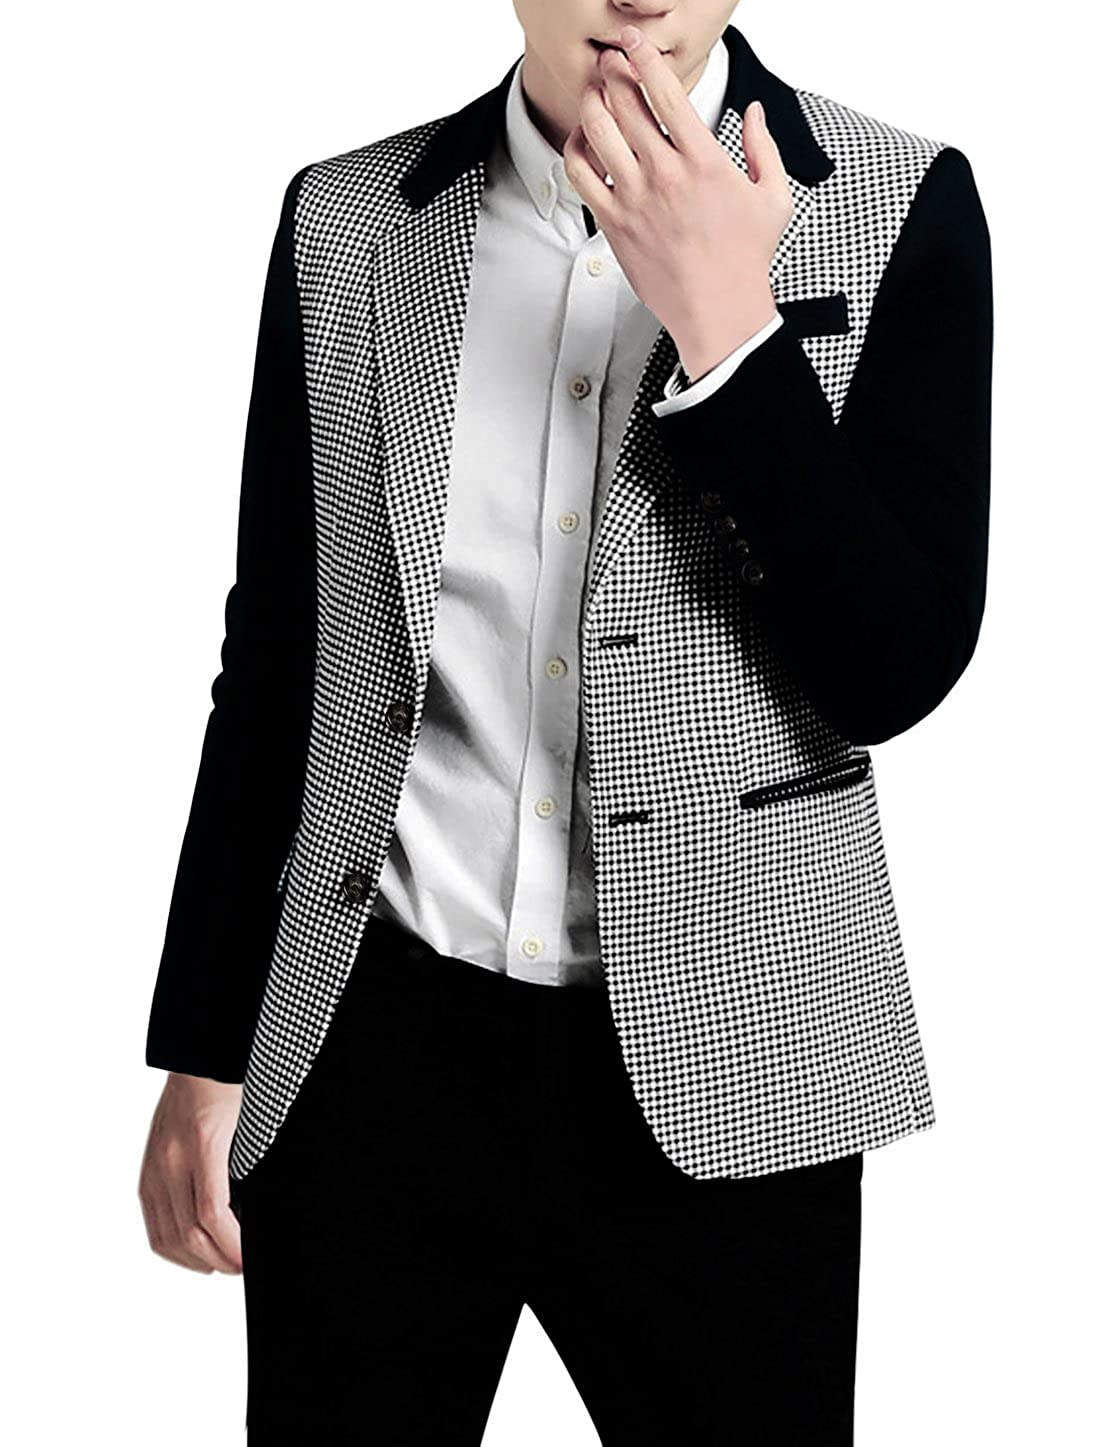 60s -70s  Men's Costumes : Hippie, Disco, Beatles uxcell Men Houndstooth Long Sleeve Padded Shoulder Single Breasted Blazer $30.93 AT vintagedancer.com